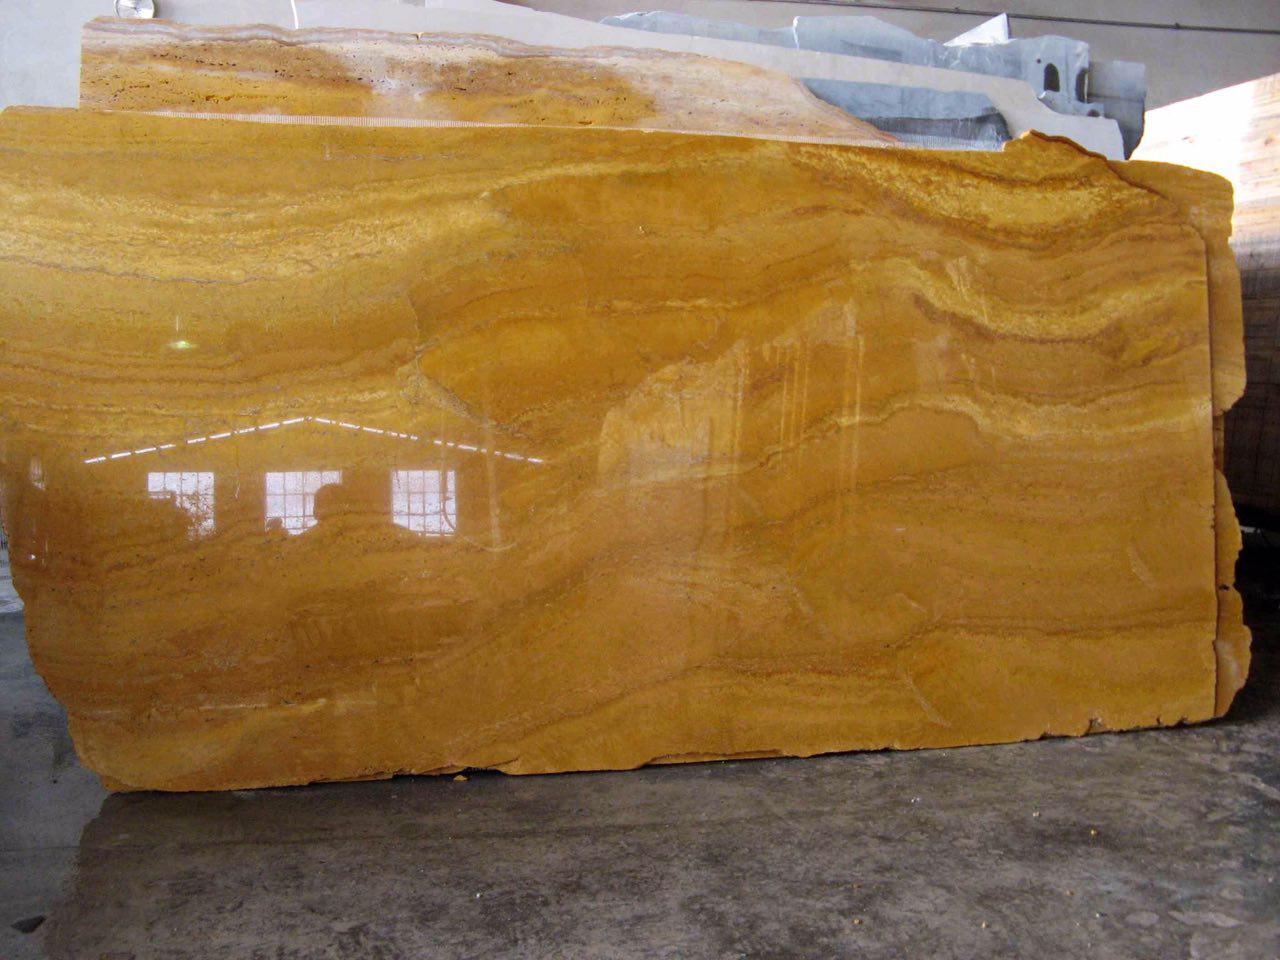 lemon travertine slabs